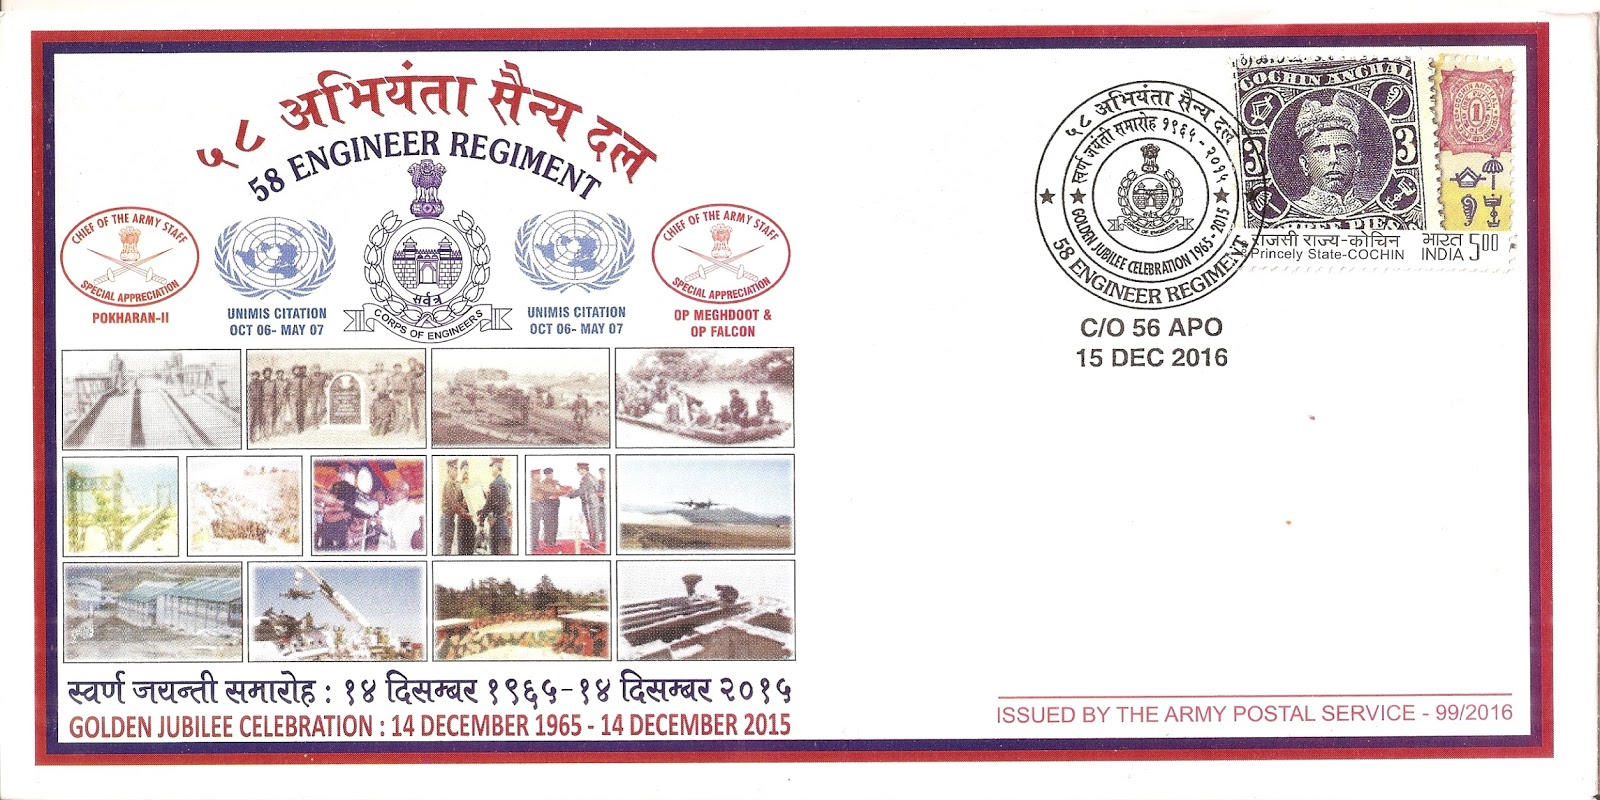 Coins and more 556 58 engineer regiment golden jubilee 556 58 engineer regiment golden jubilee celebrations 50 years of glorious service 14121965 14122015 a special cover issued by 56 apo army post kristyandbryce Choice Image